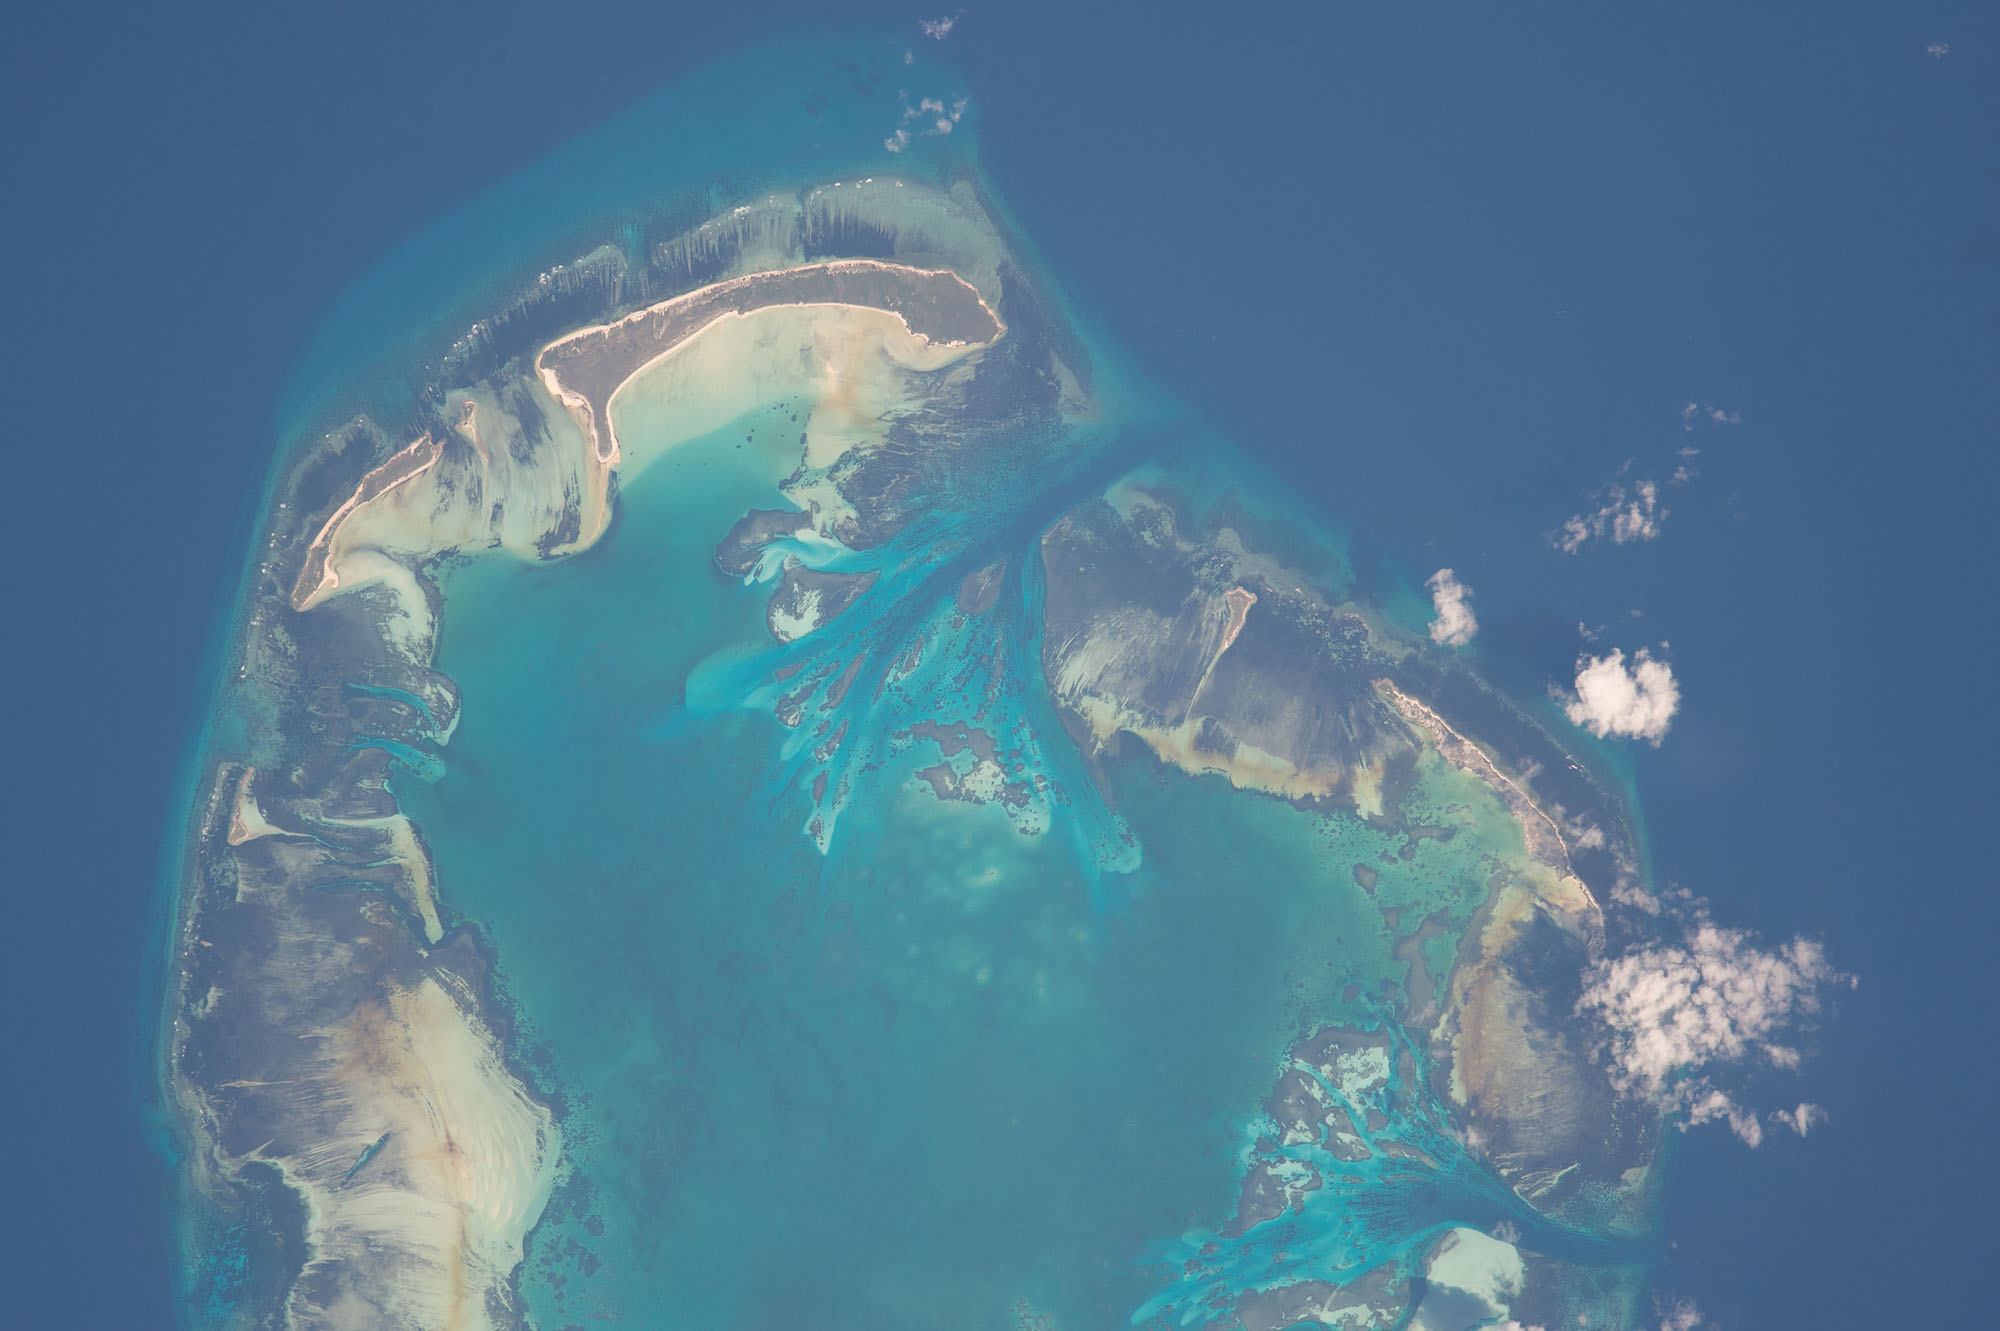 Aldabra atoll in the Seychelles, photographed from space by an astronaut on the International Space Station, is a UNESCO site and home to rare Indian Ocean dugongs and sea tortoises. Courtesy of NASA (https://eol.jsc.nasa.gov/SearchPhotos/photo.pl?mission=ISS050&roll=E&frame=29472)